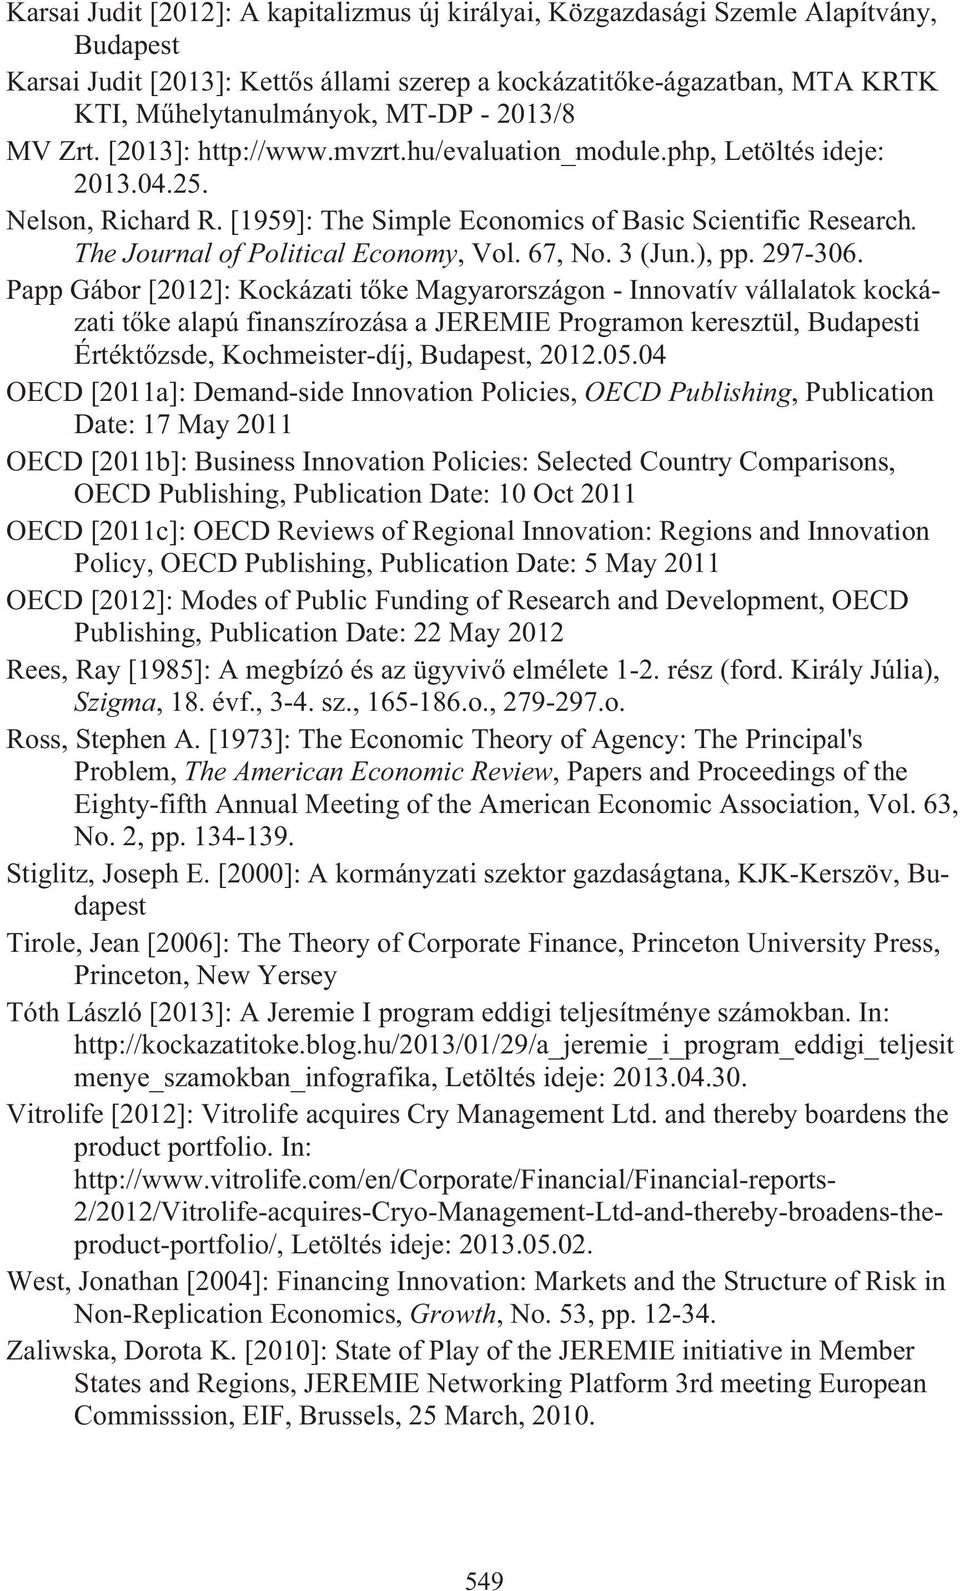 The Journal of Political Economy, Vol. 67, No. 3 (Jun.), pp. 297-306.